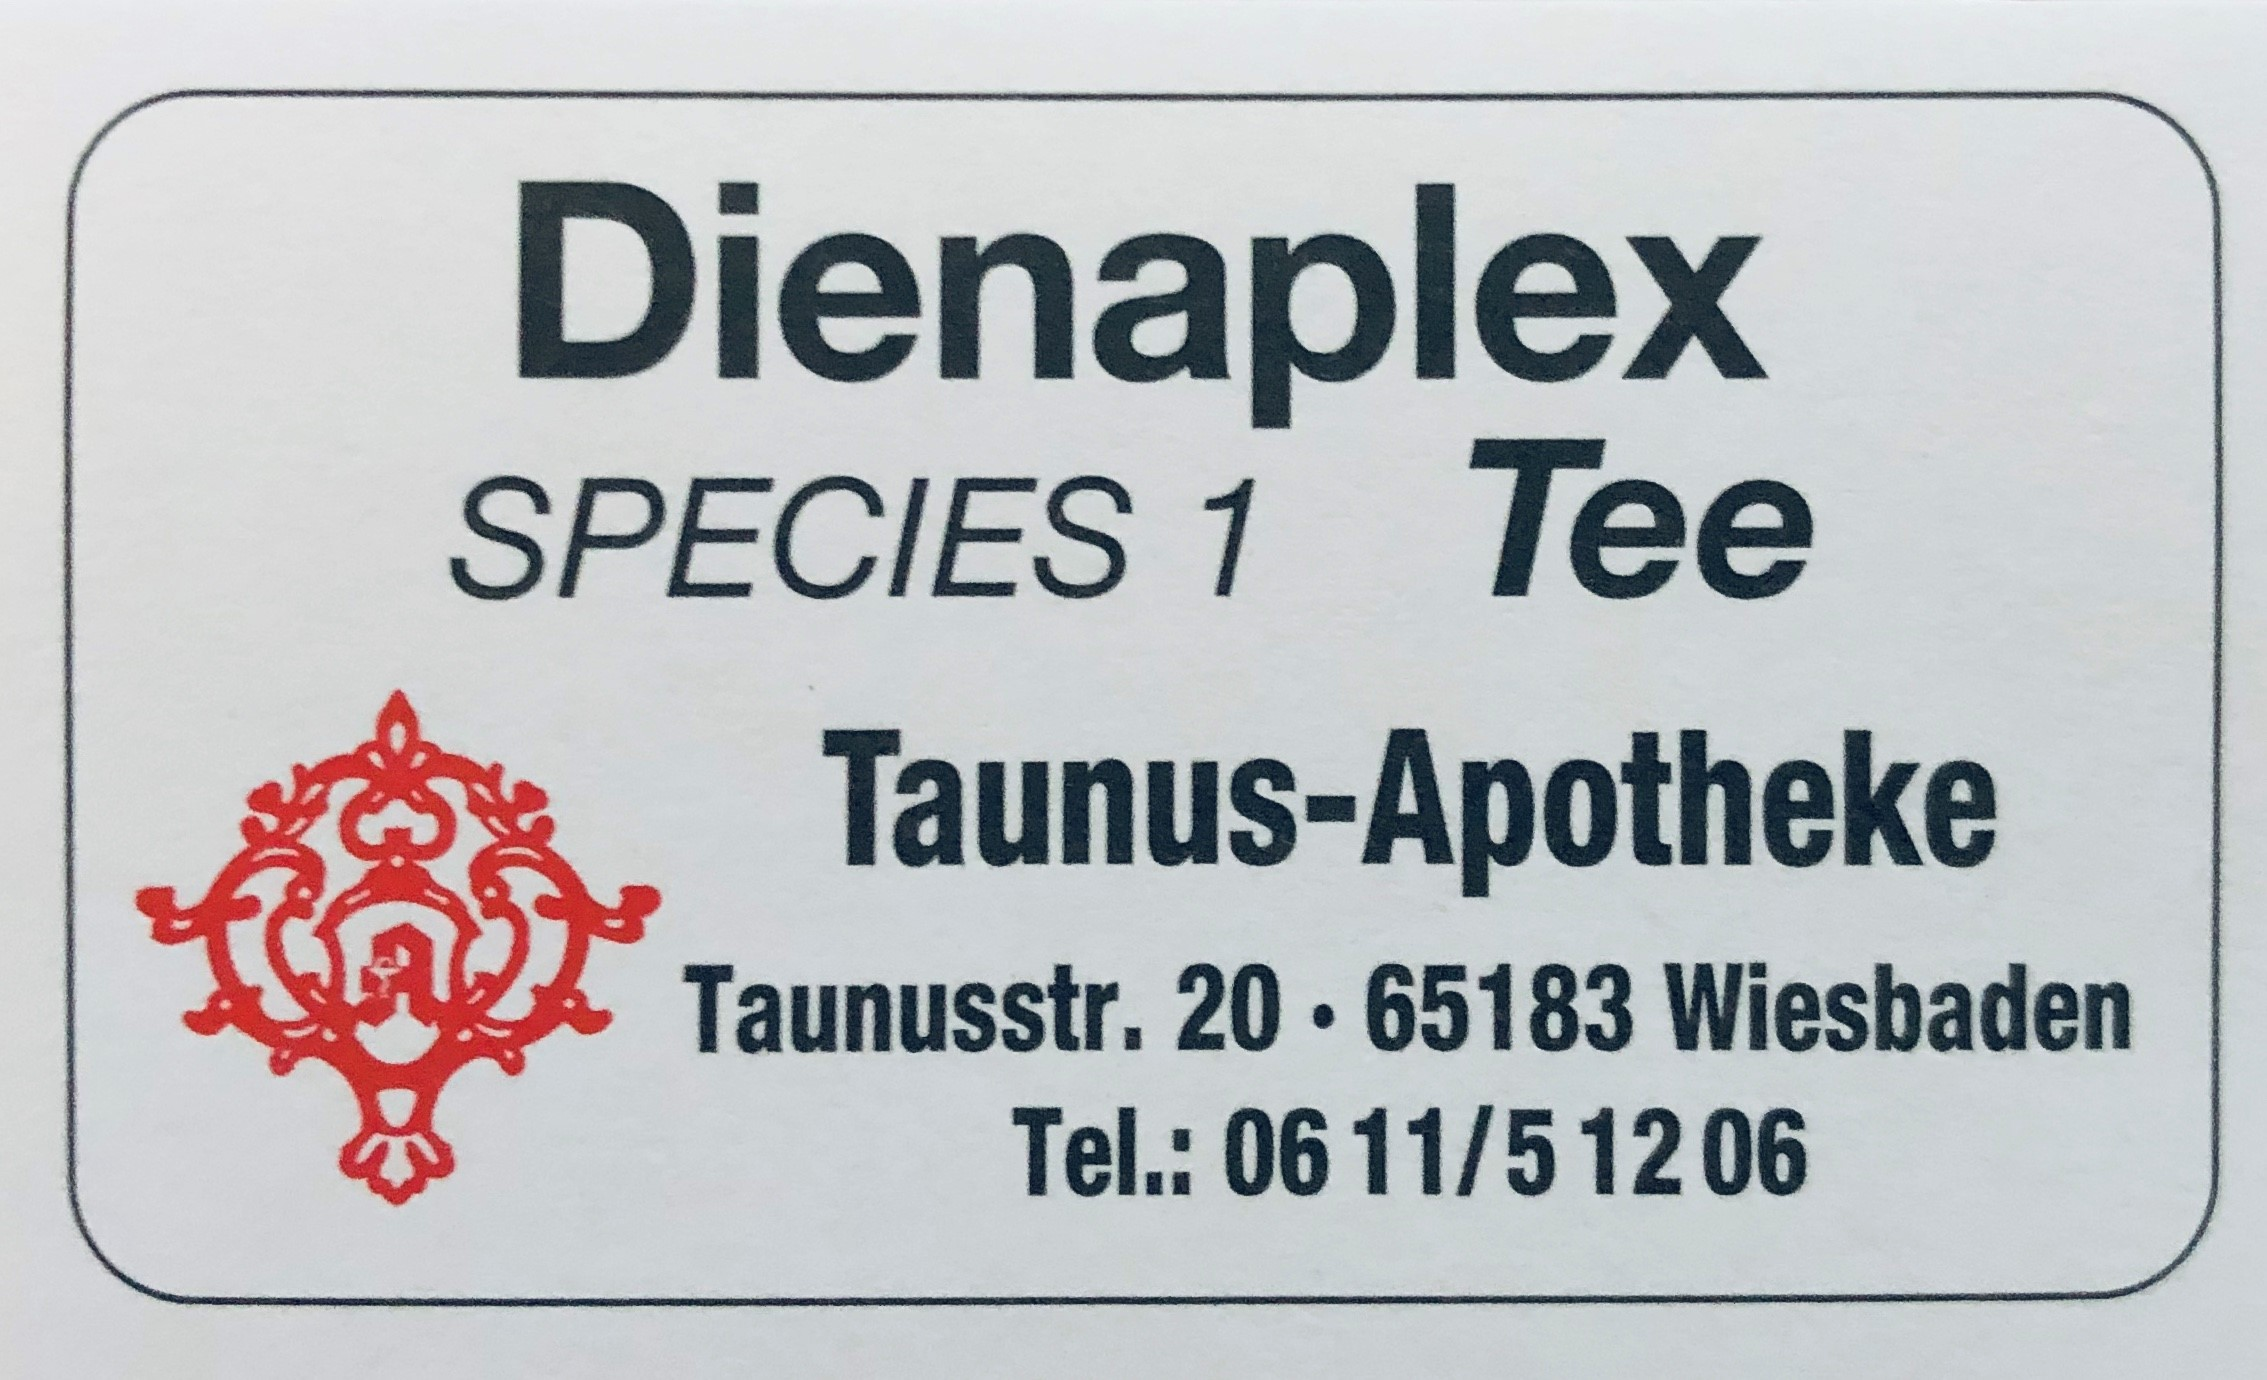 Dienaplex Species 1 Tee